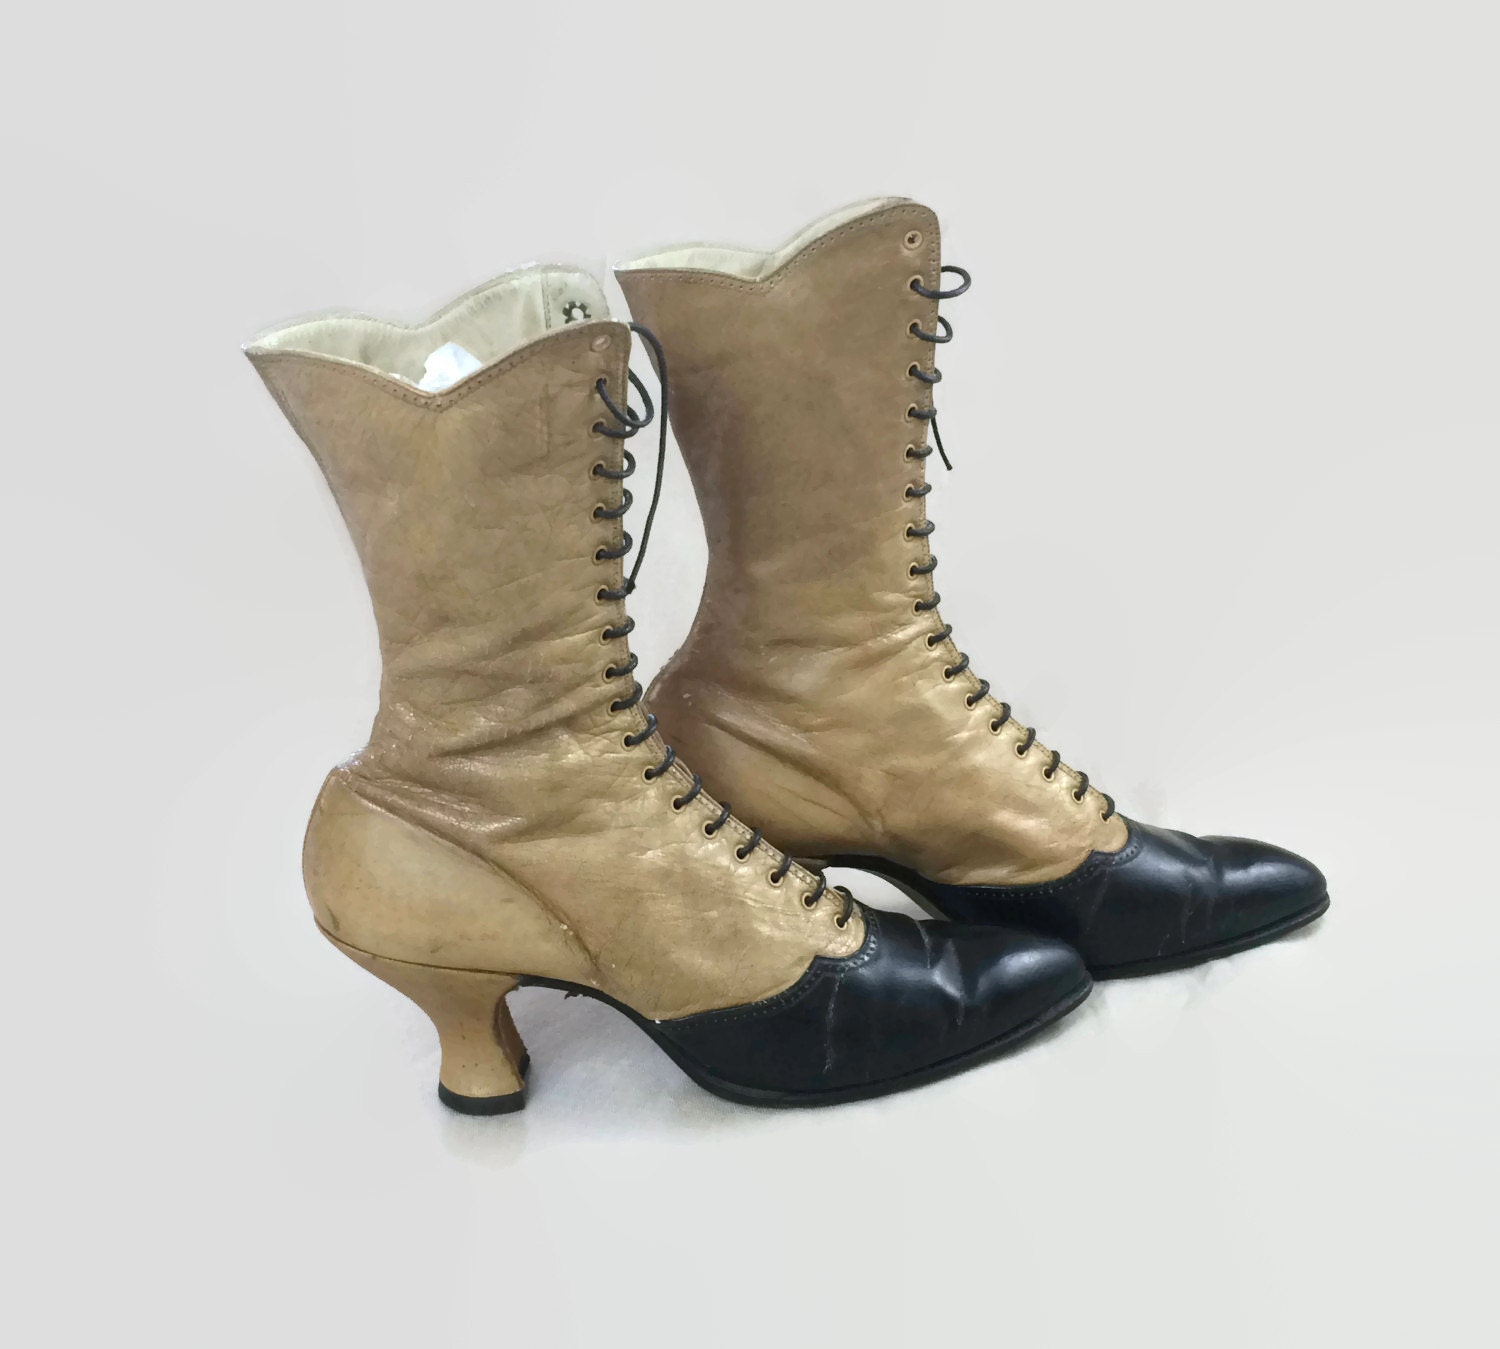 Antique Victorian Lace Up Boots Two Tone Edwardian Shoes